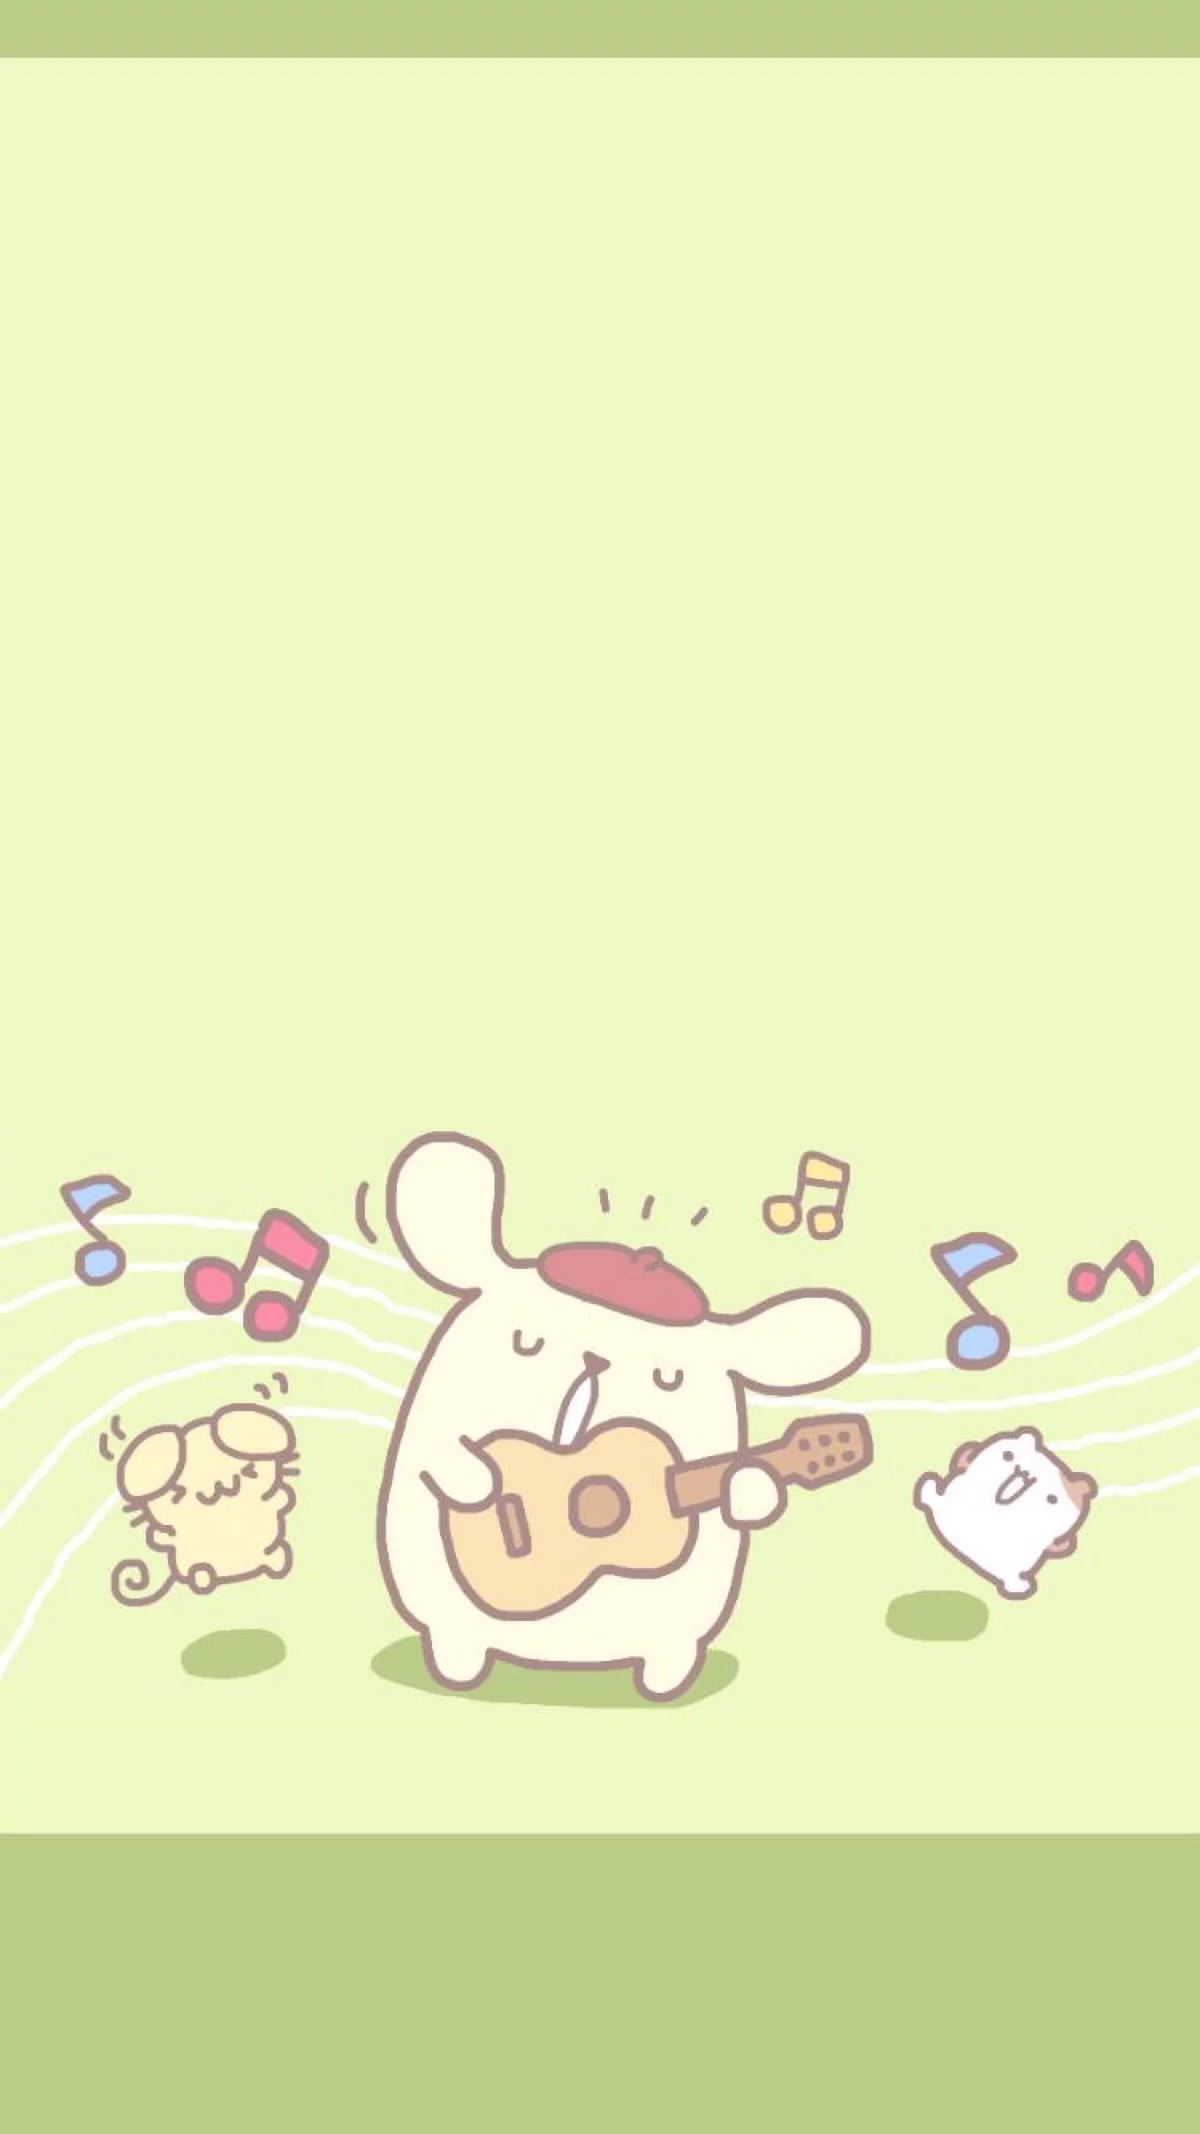 Cute Pastel Wallpaper For Iphone Sanrio Pom Pom Purin And Macaron Wallpaper 183 ① Wallpapertag